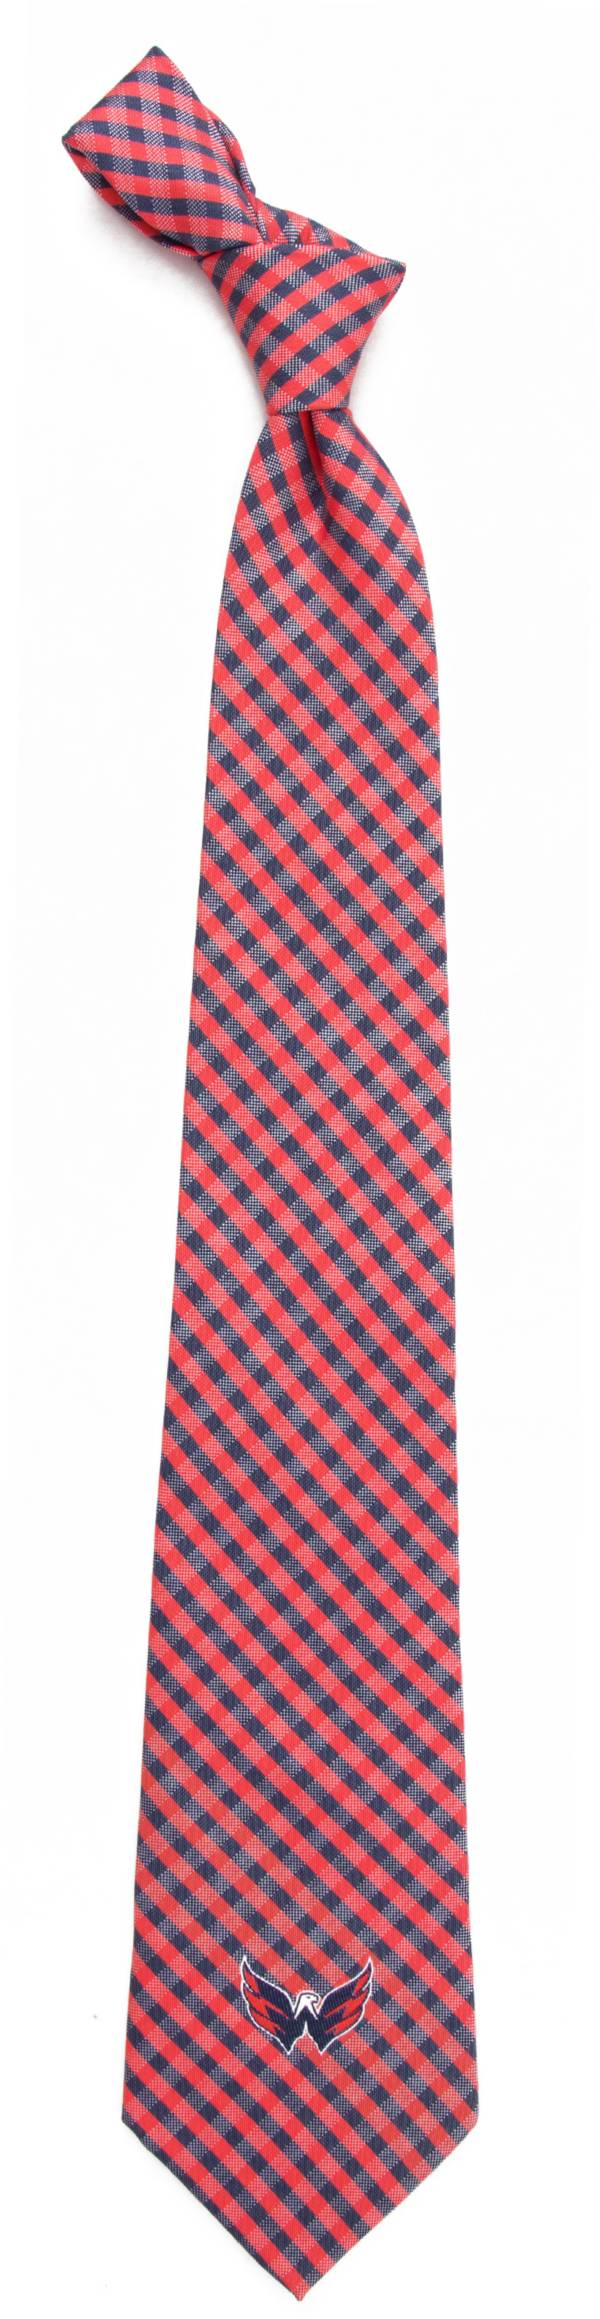 Eagles Wings Washington Capitals Gingham Necktie product image